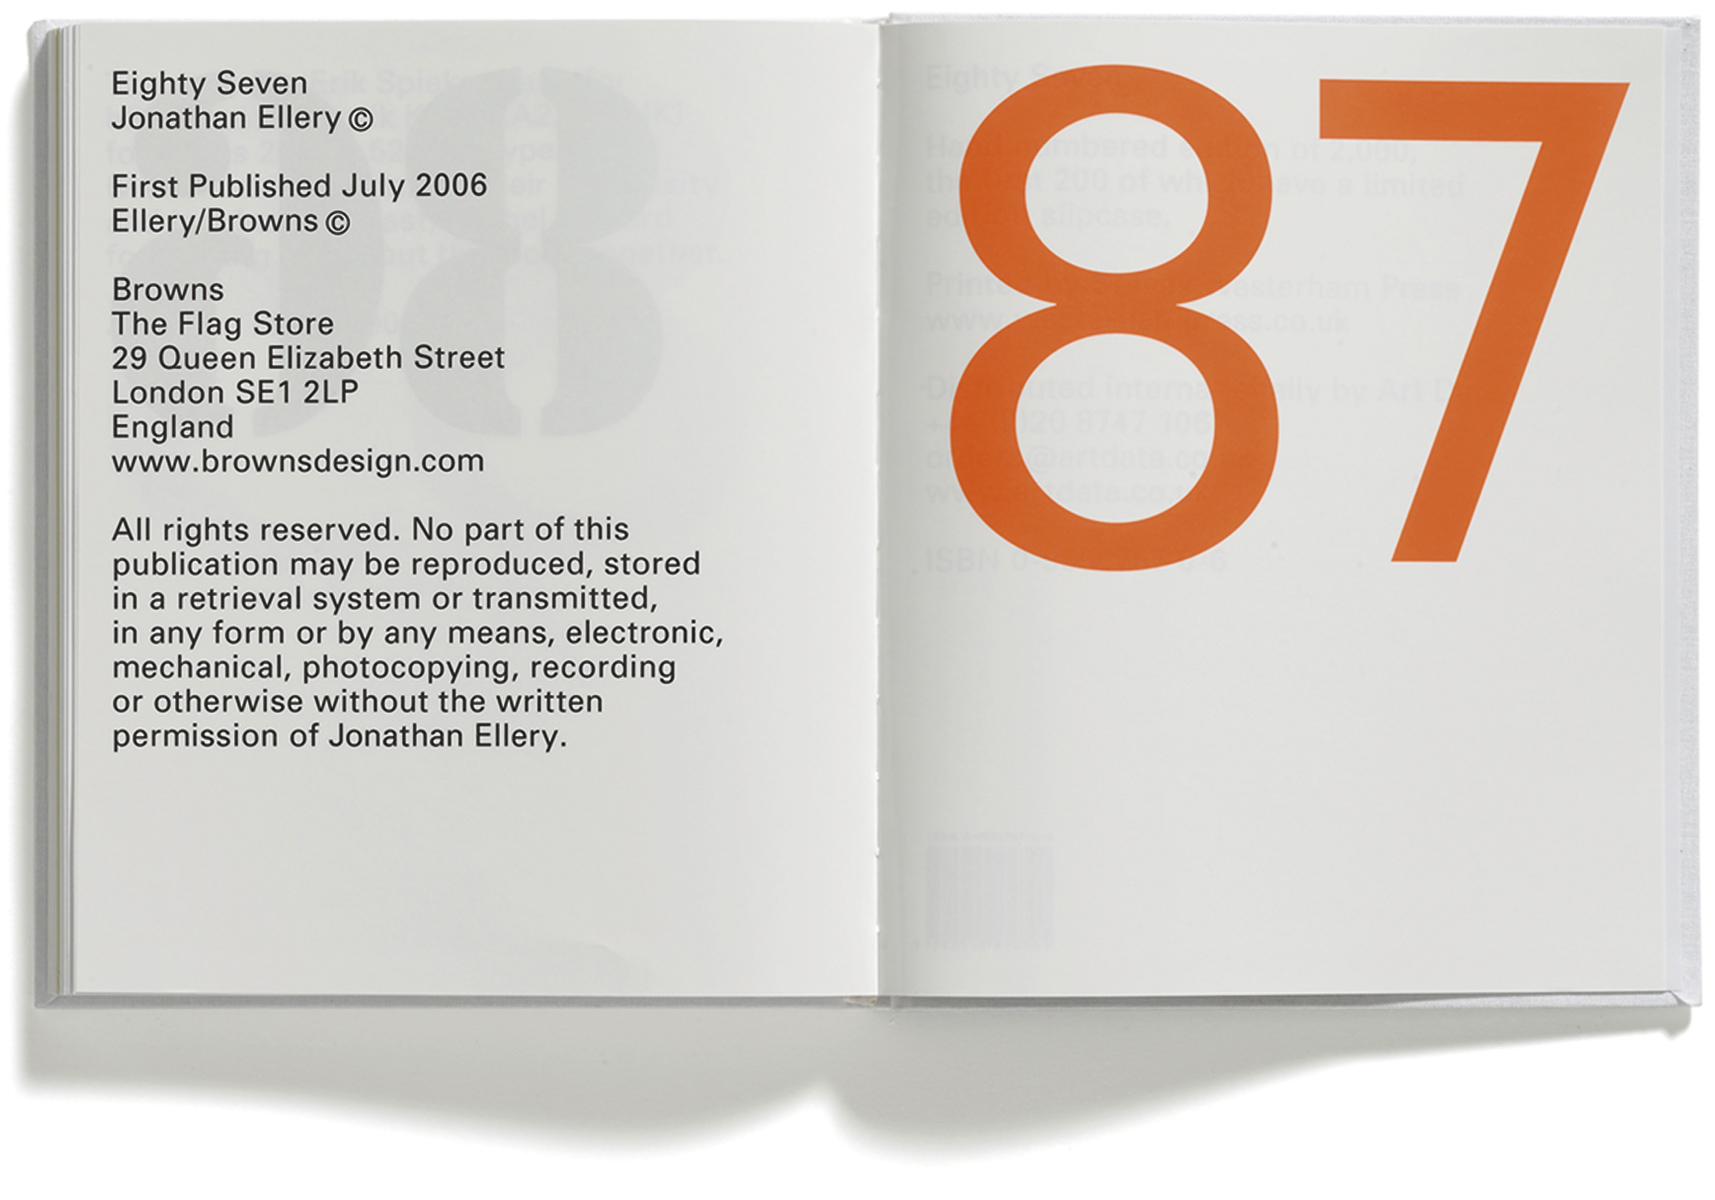 87 Ellery, Jonathan Ellery, Published by Browns Editions, Design by Browns Design, book